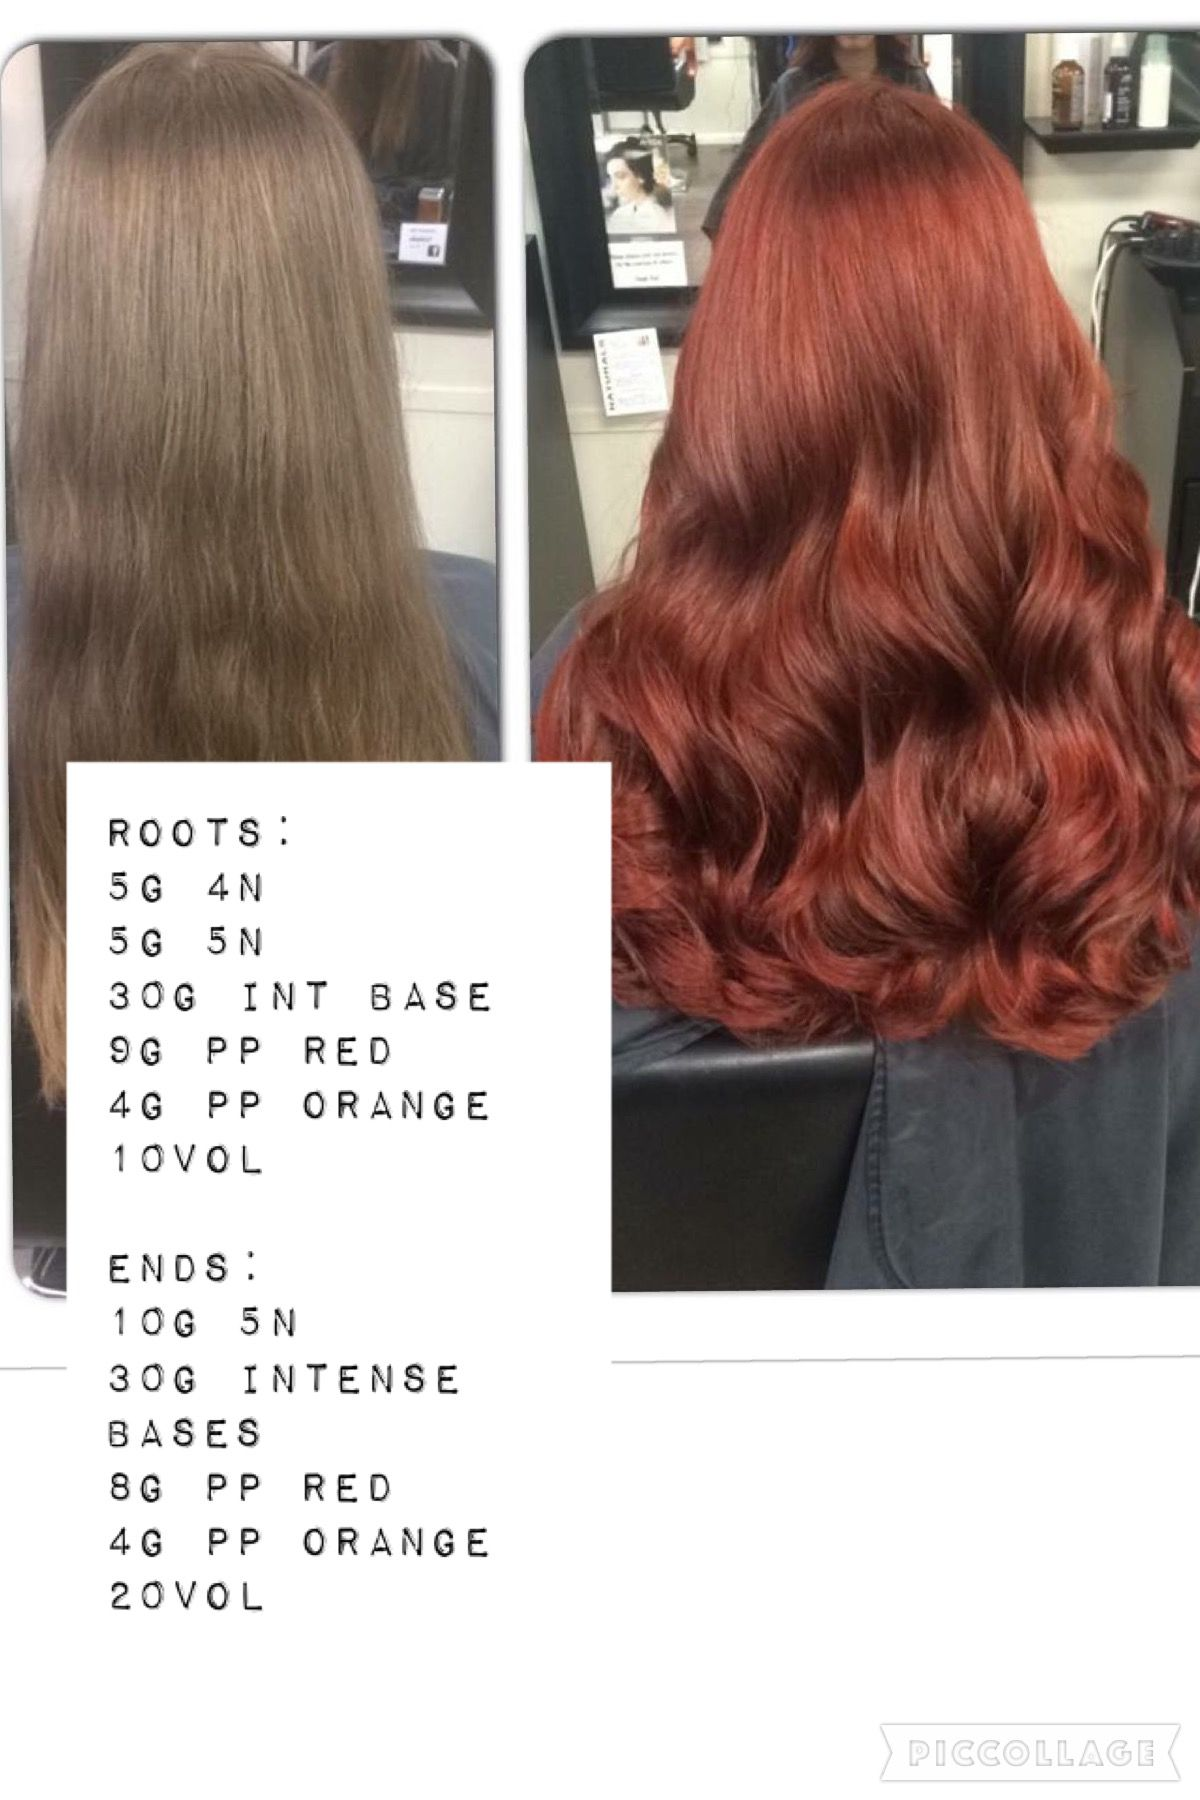 Pin By Out4blood13 On Formulas Aveda Hair Color Hair Color Formulas Aveda Hair